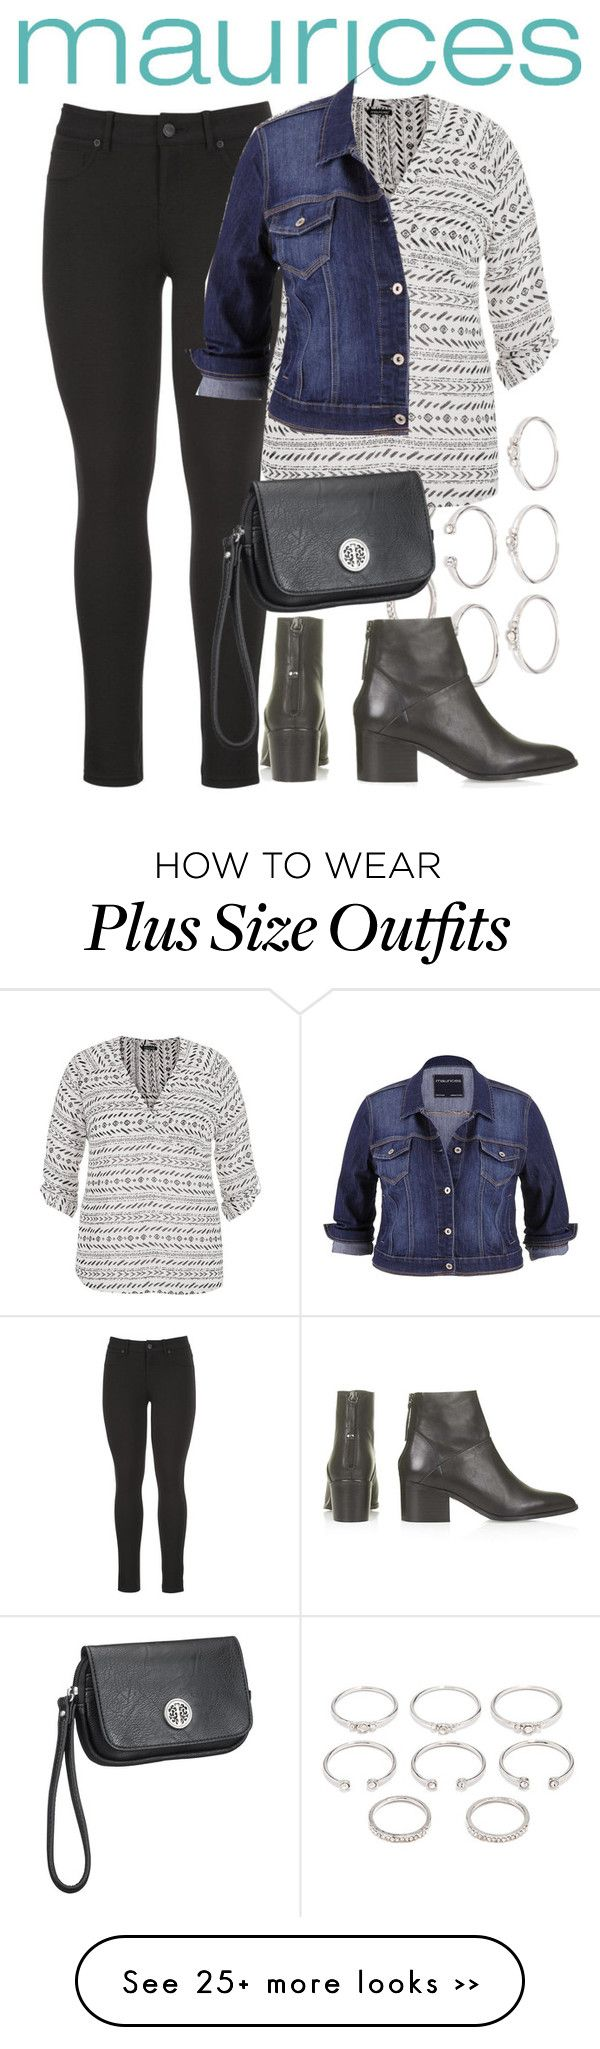 """The Perfect Blouse with maurices: Contest Entry"" by paolandreasc on Polyvore featuring maurices, Forever 21, Topshop, contest and contestentry"